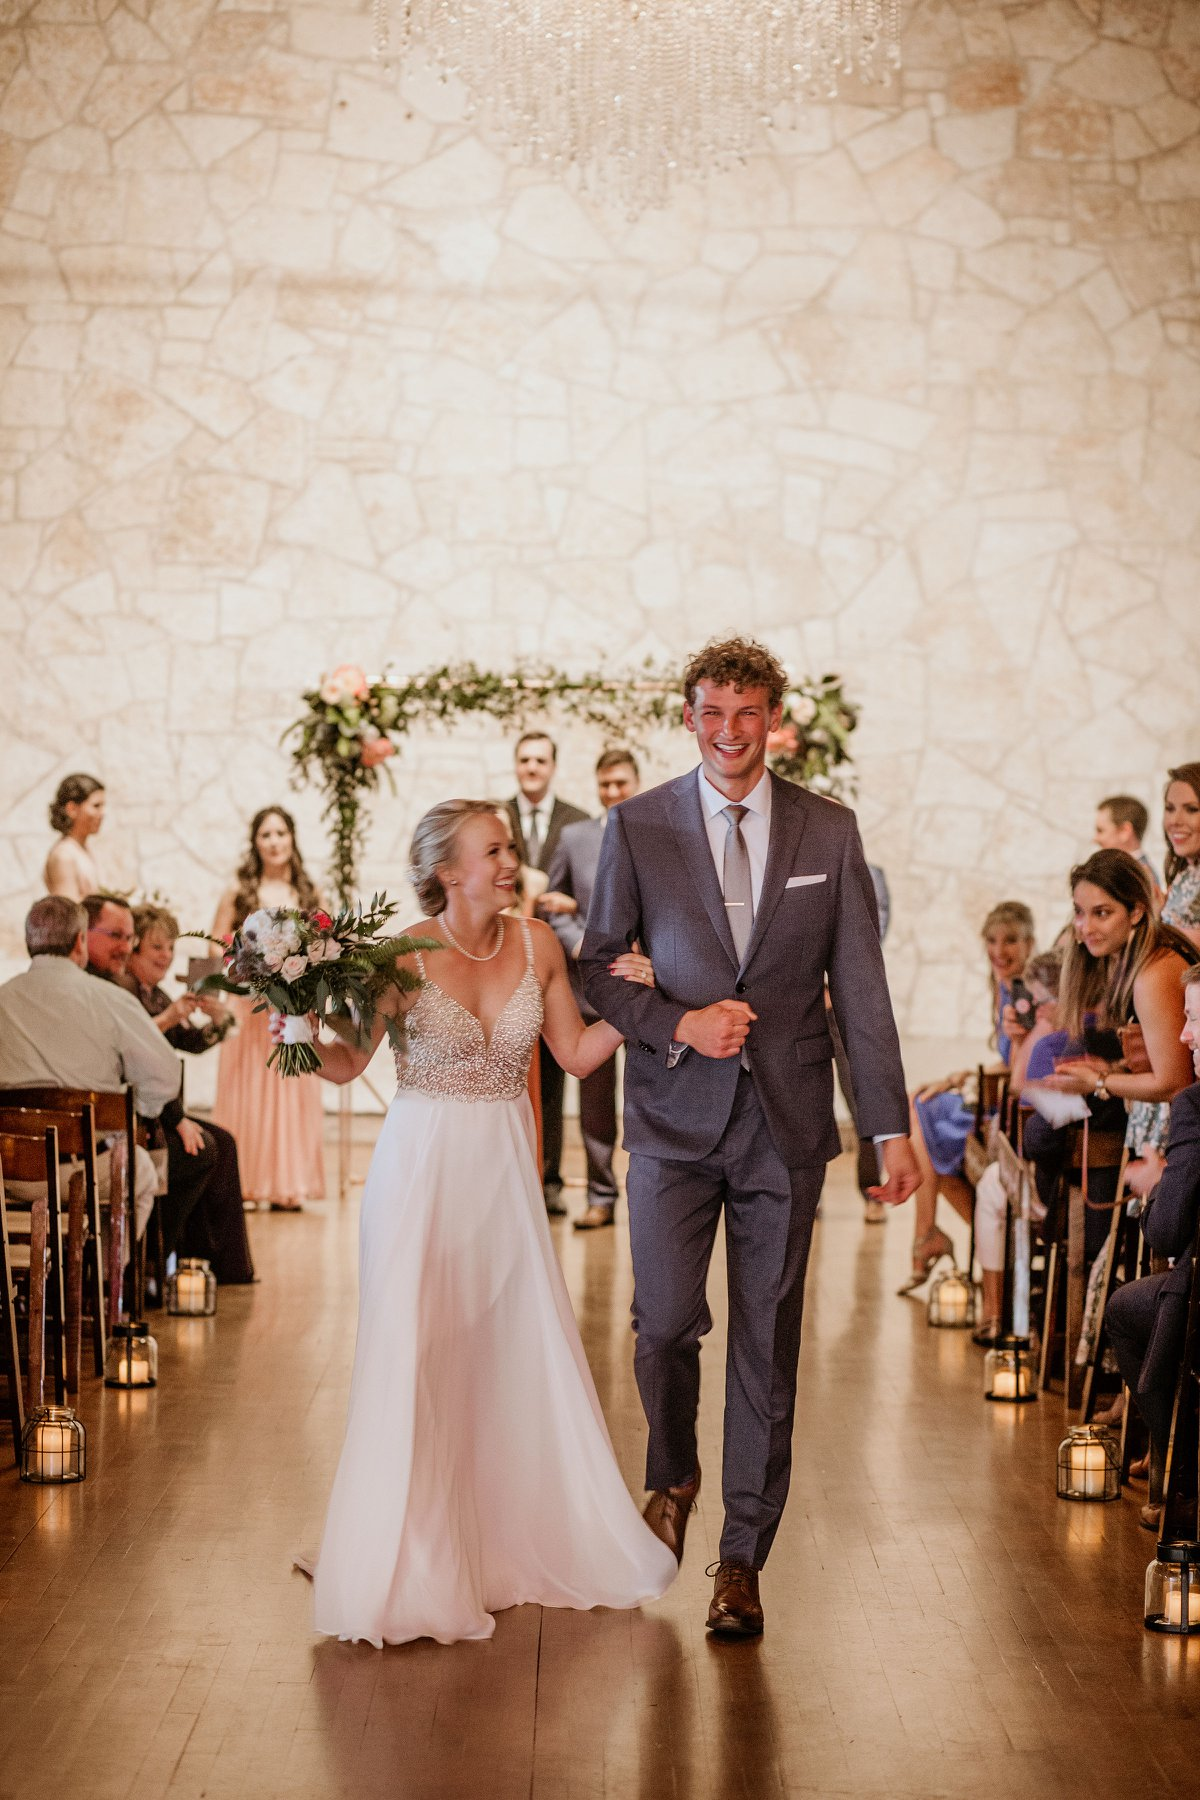 Alexe & Chase - at Brodie HomesteadPhotography by Adeline Rock